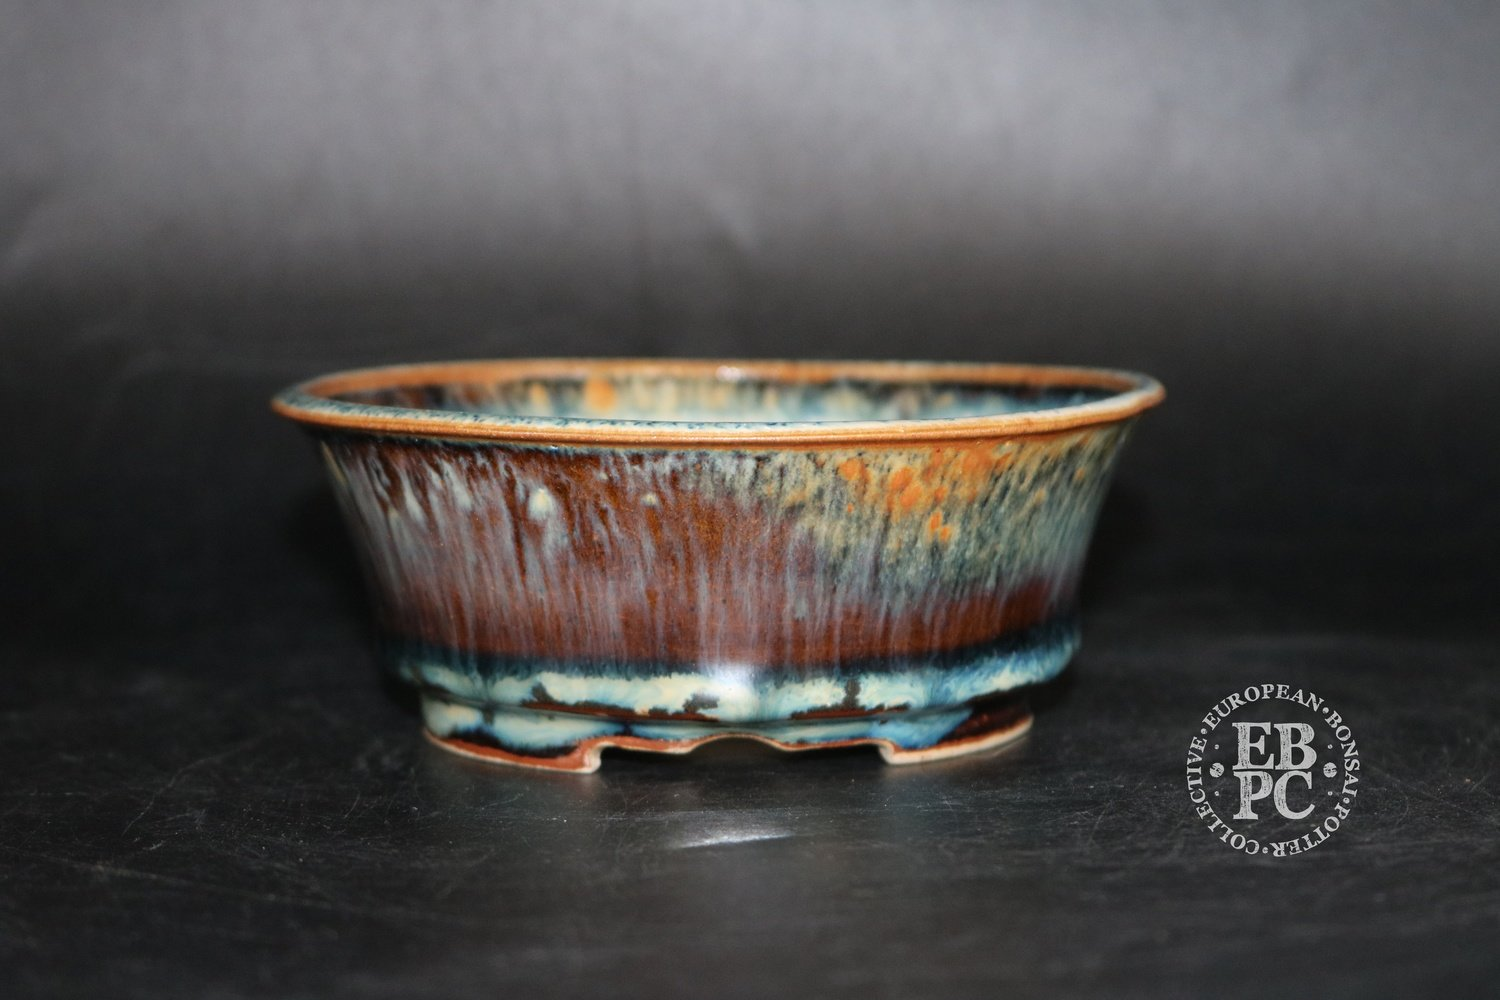 SOLD - Amdouni Bonsai Pots - 13.2cm; Glazed; Round; Semi cascade; Fire Glaze; Orange; Yellow; Reds; Sami Amdouni